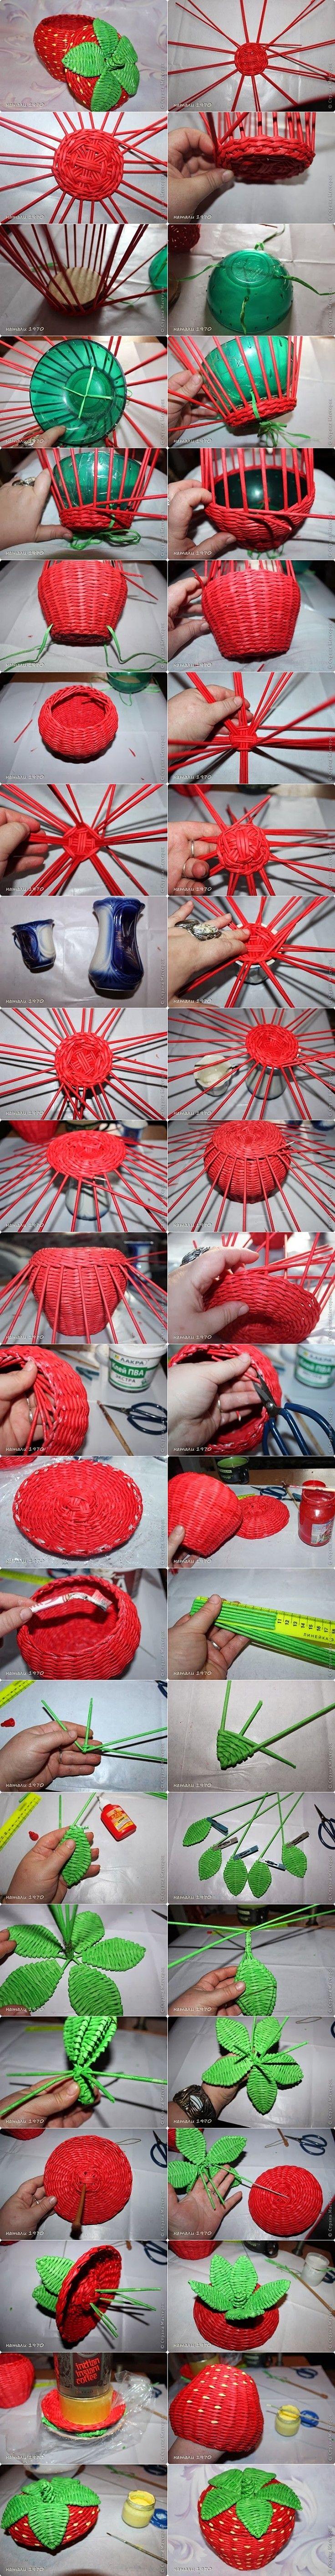 手工 收纳篮编法 DIY Woven Strawberry Shaped Basket from Recycled Newspaper